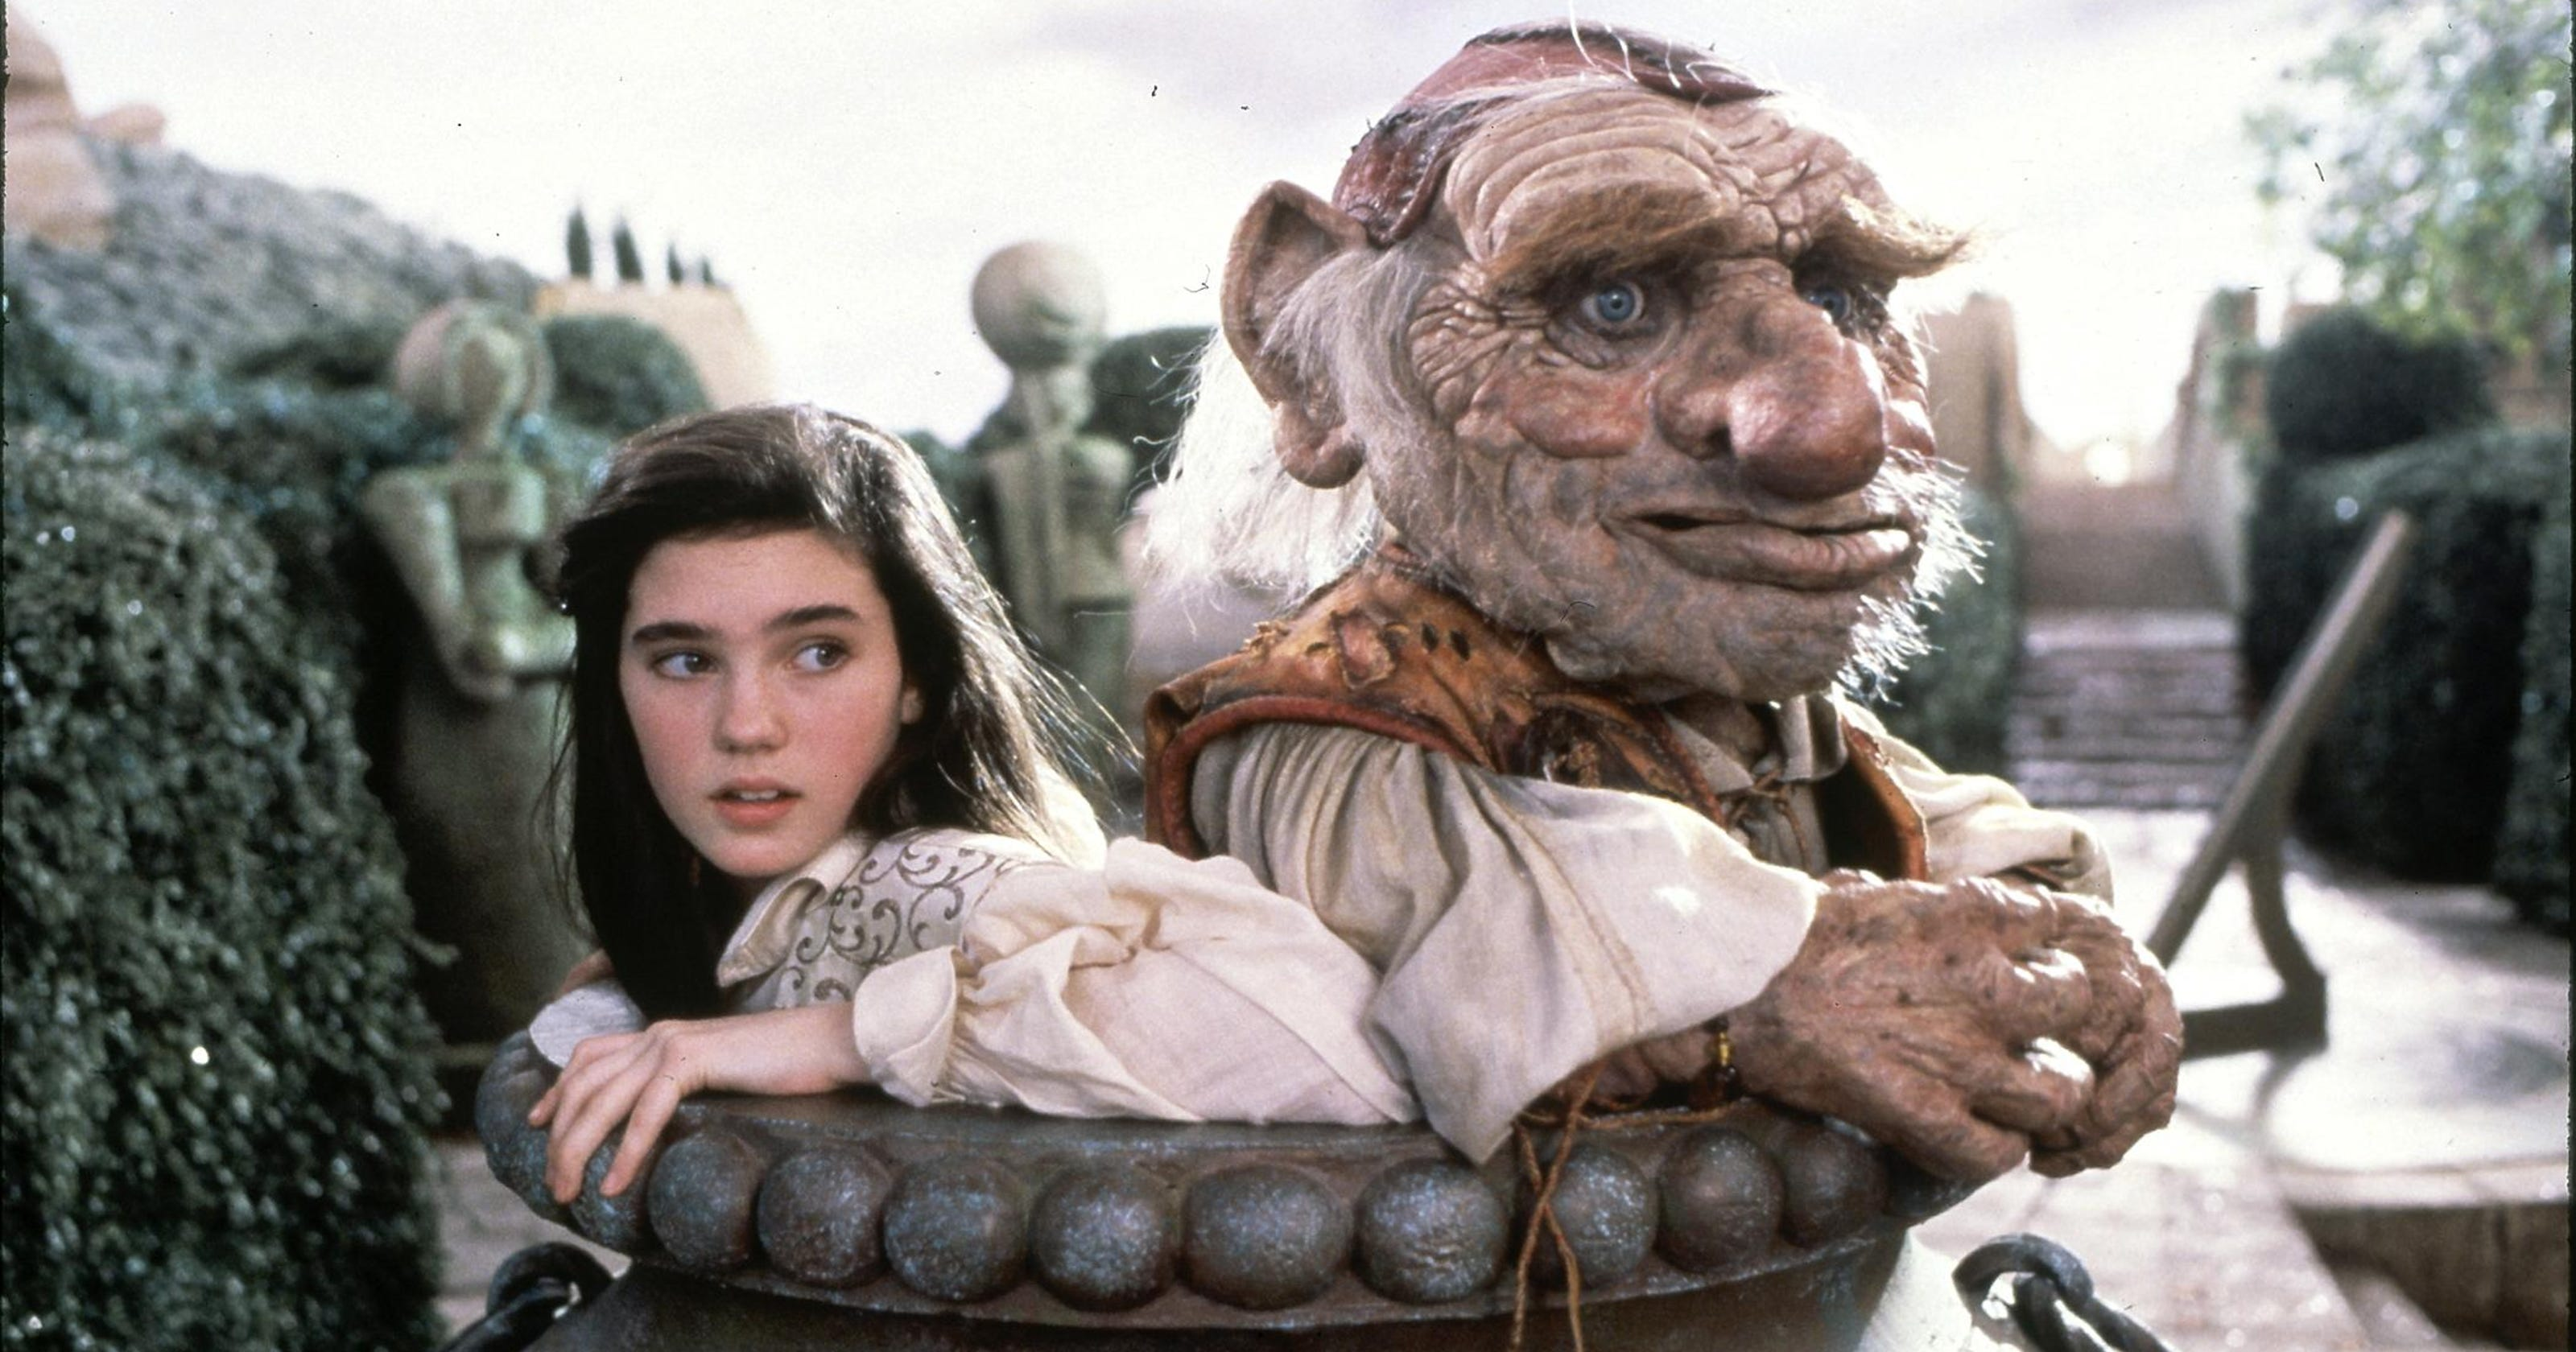 Free Outdoor Cult Film Series Kicks Off In Corktown This Month Popcorn On Pinterest Short Circuit 2 The Princess Bride And Movies